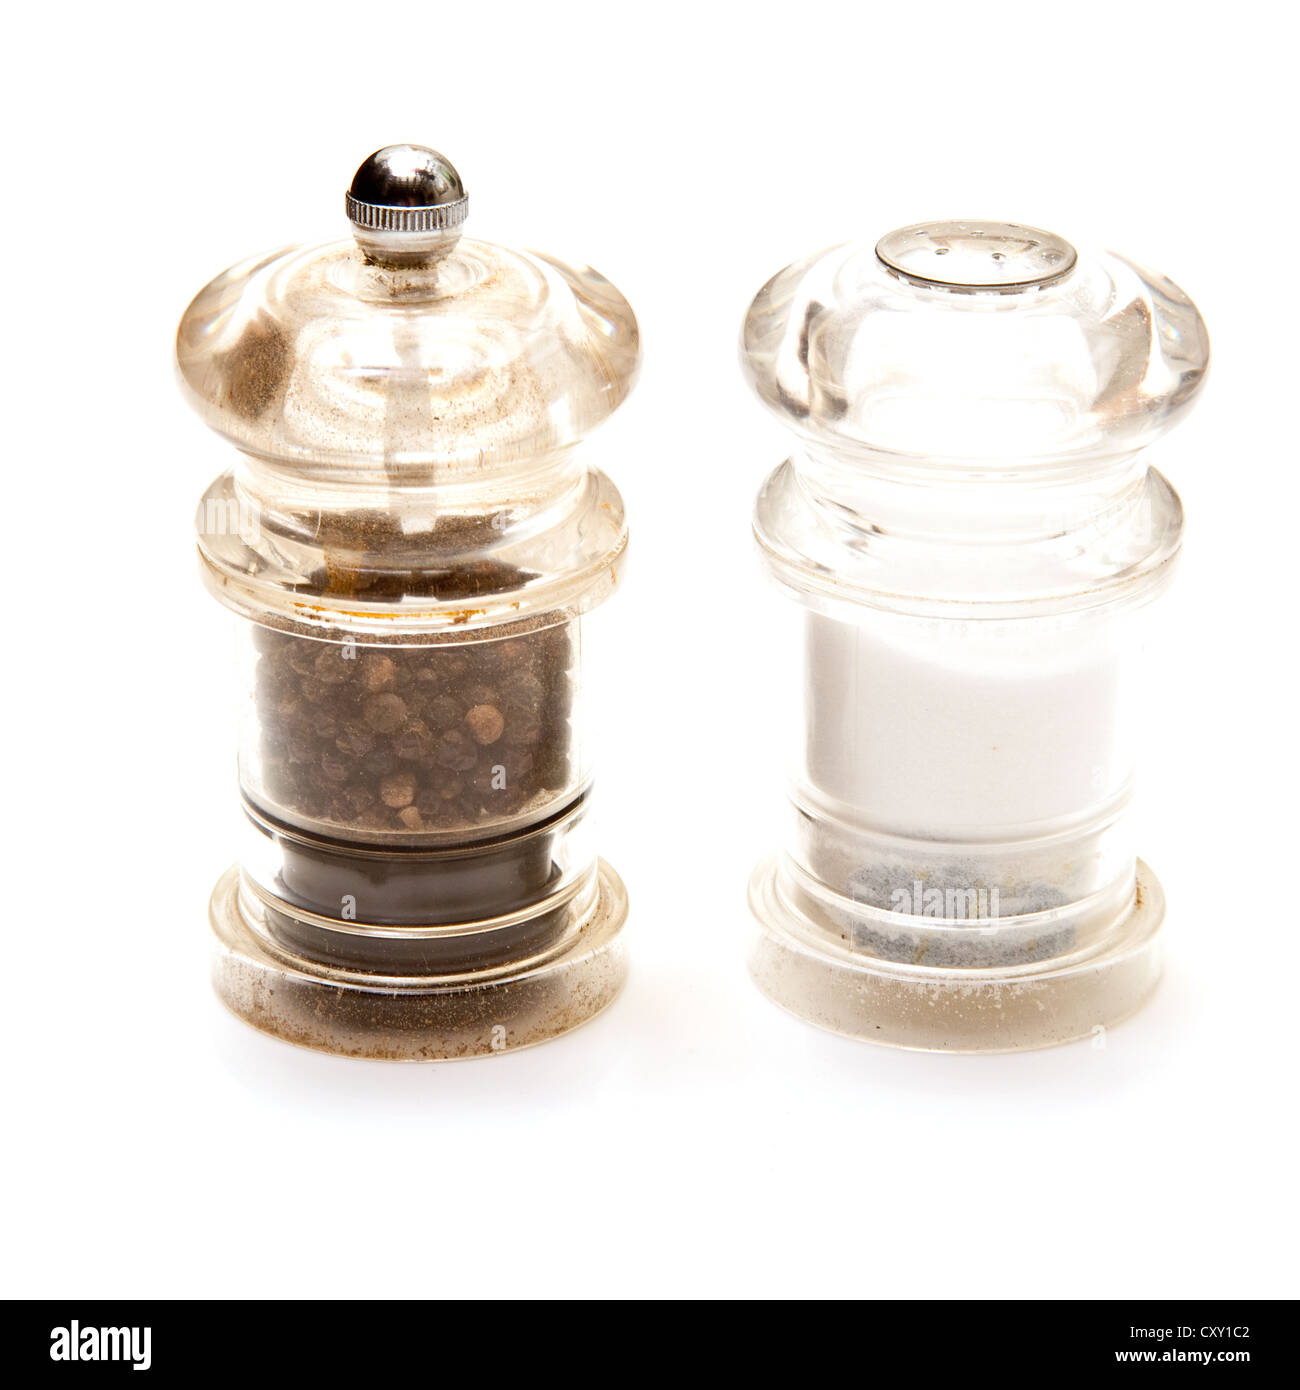 Salt and Pepper grinders isolated on a white studio background. - Stock Image